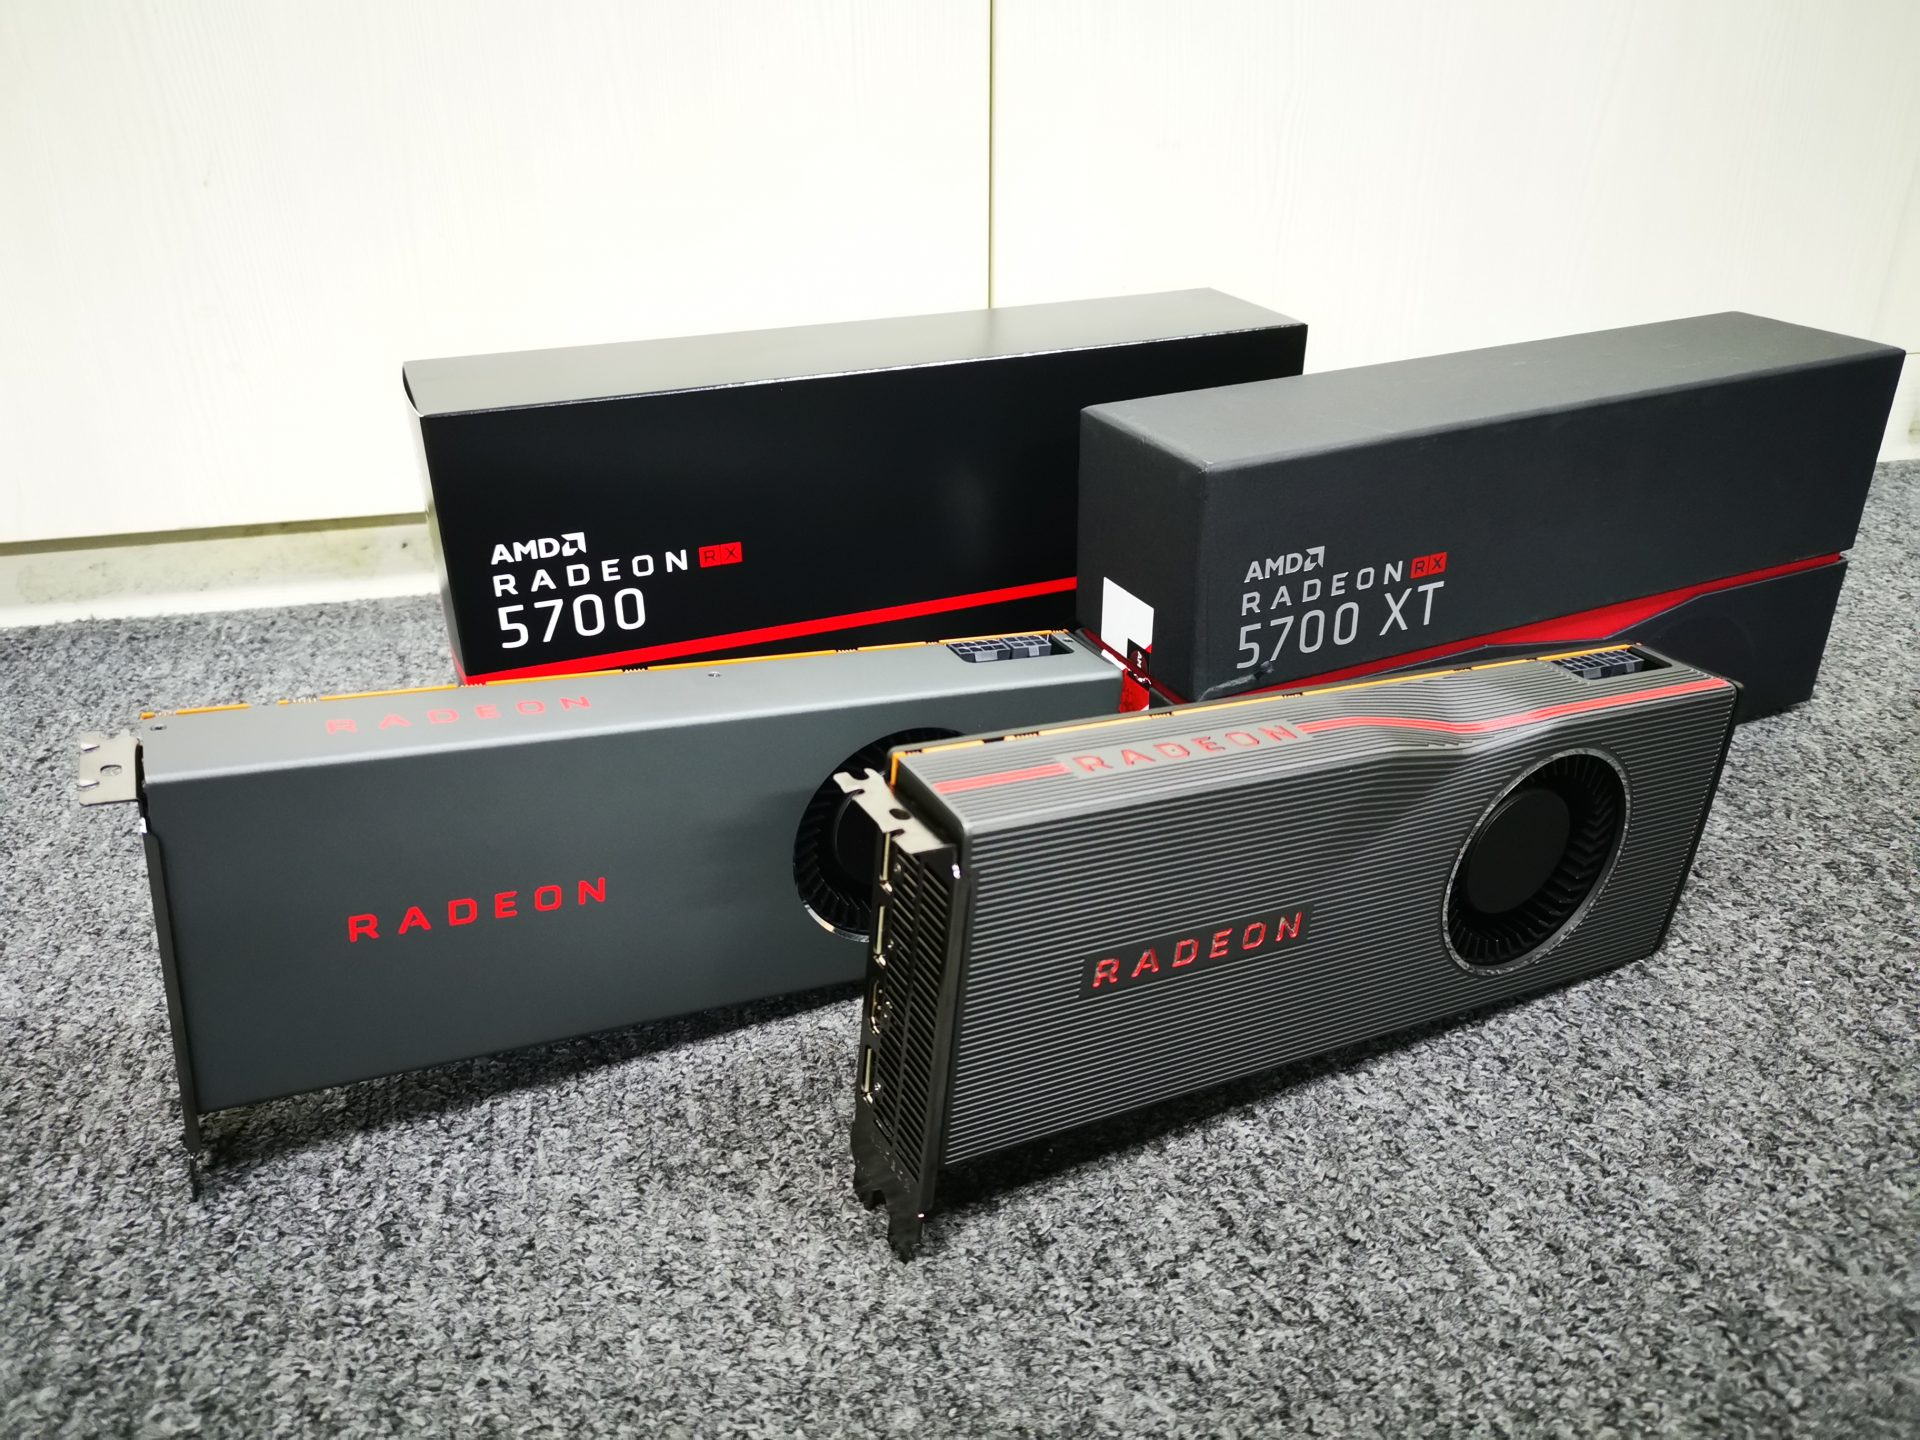 AMD Radeon RX 5700 XT and RX 5700 Graphics Card Review - Can